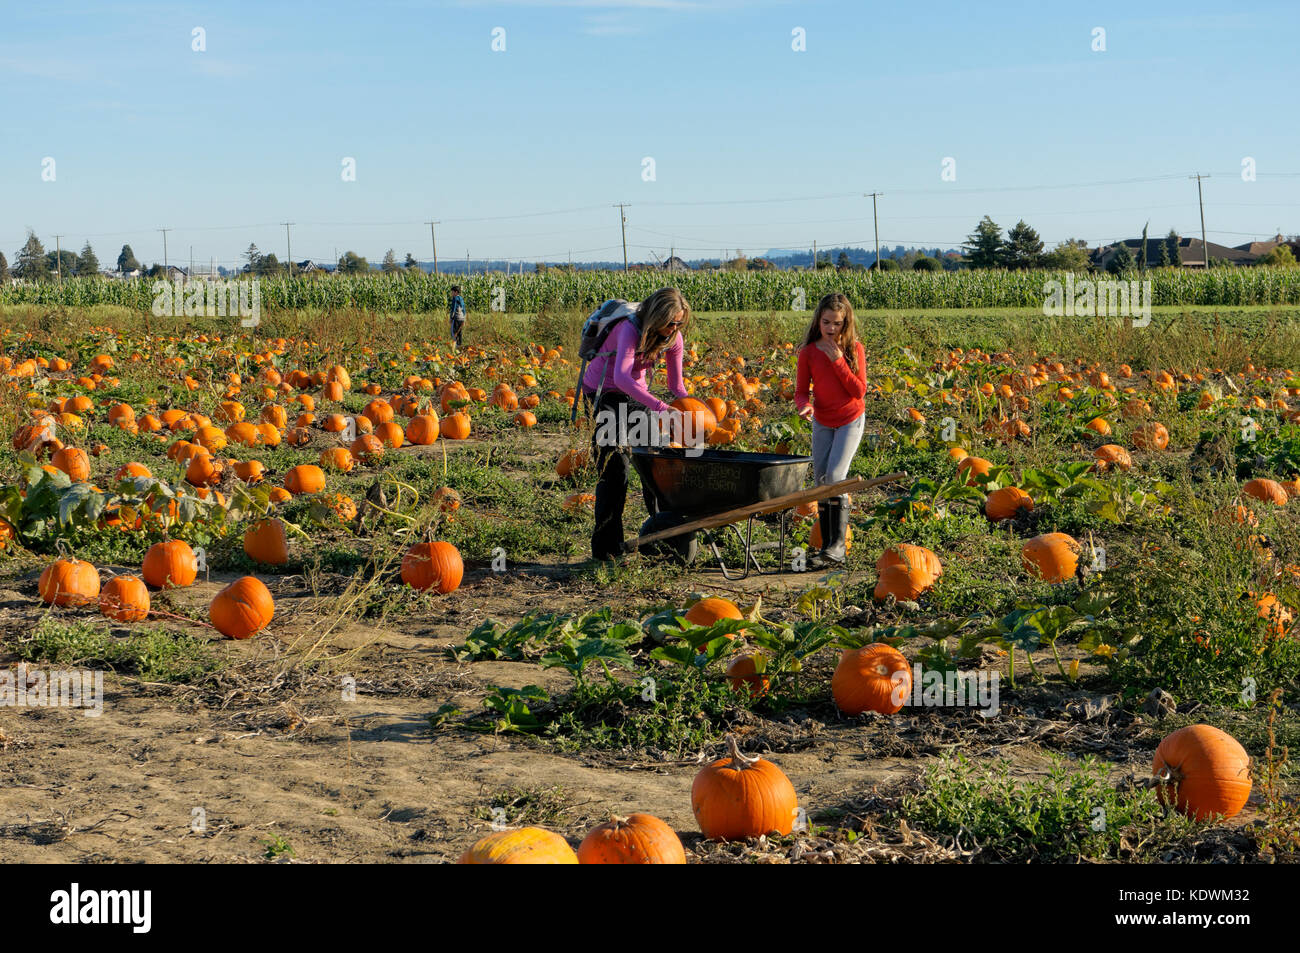 Mother an daughter placing pumpkins in a wheelbarrow at Westham Island Herb Farm, Delta, British Columbia, Canada - Stock Image